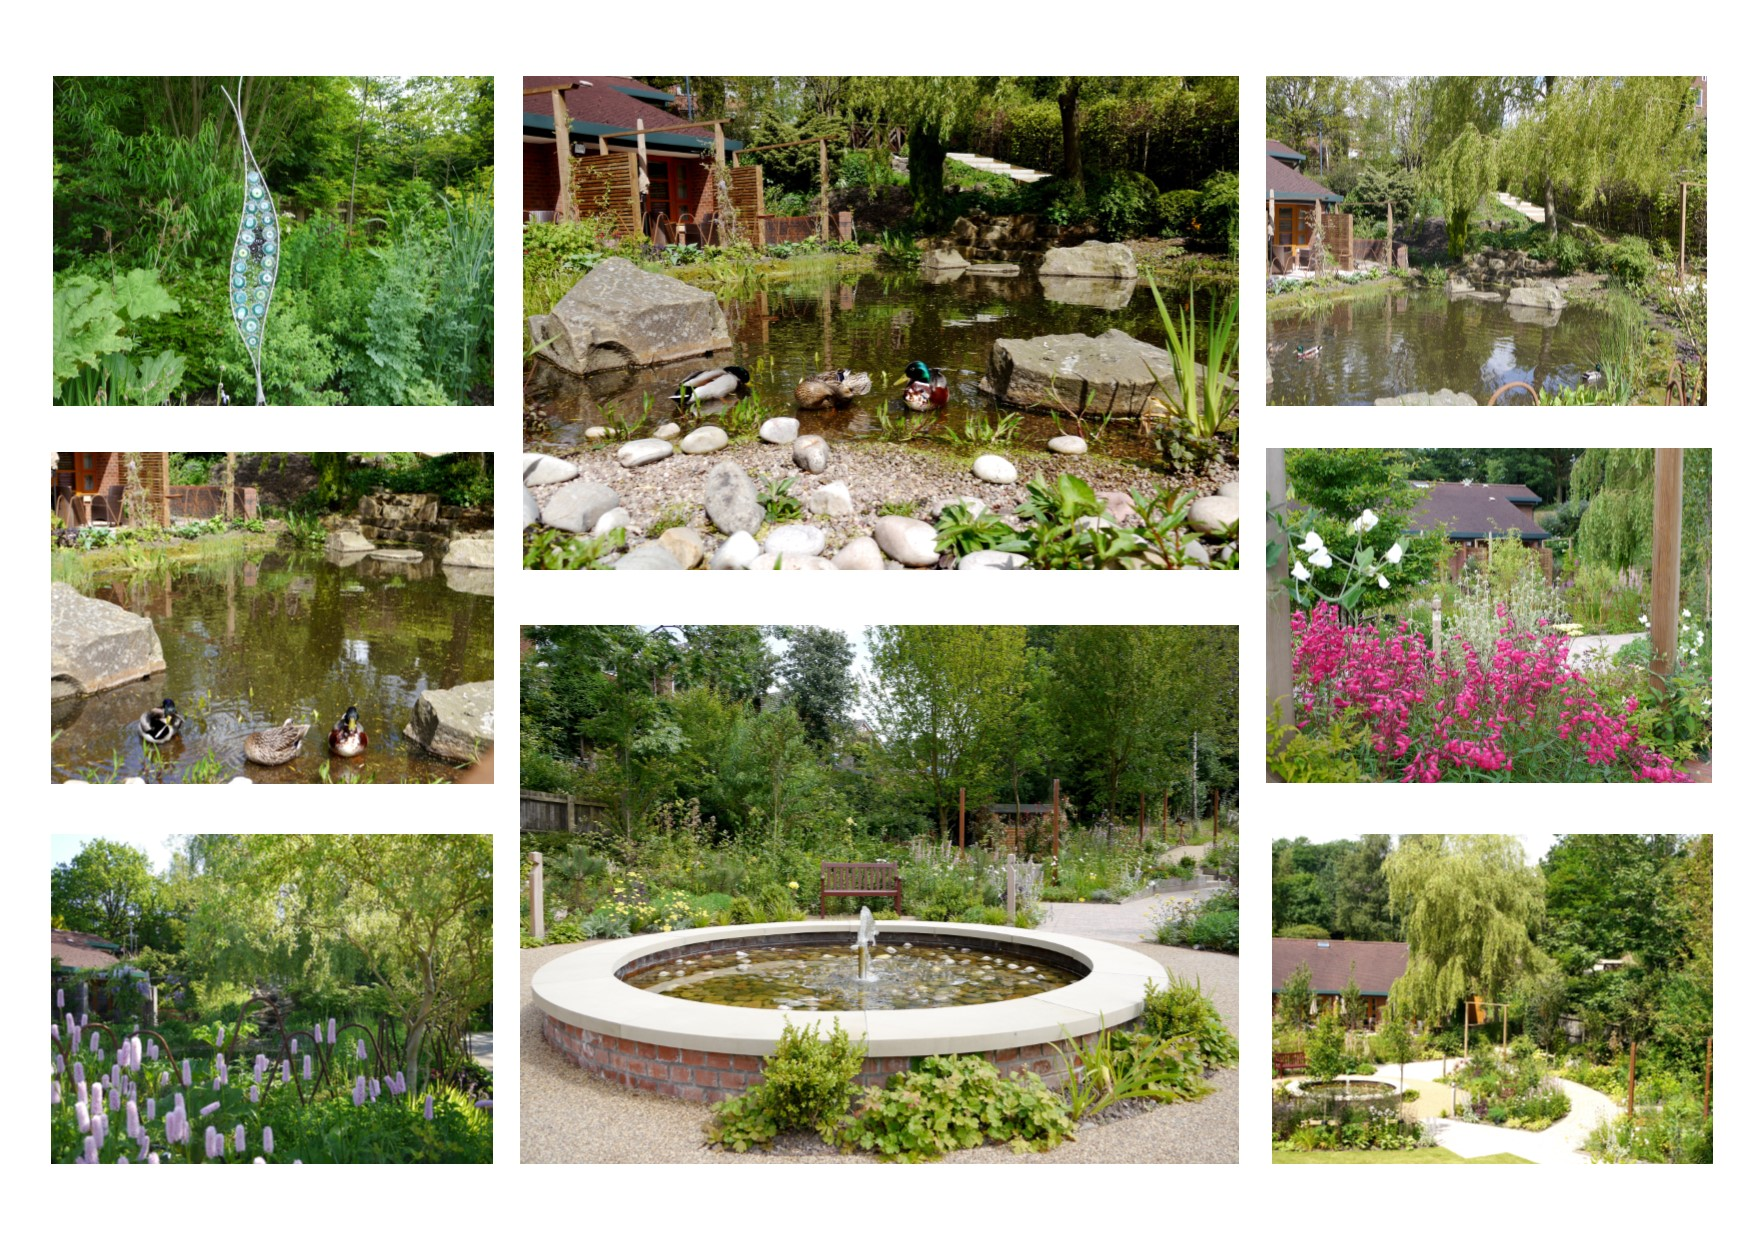 Garden_pages_-_pond.jpg